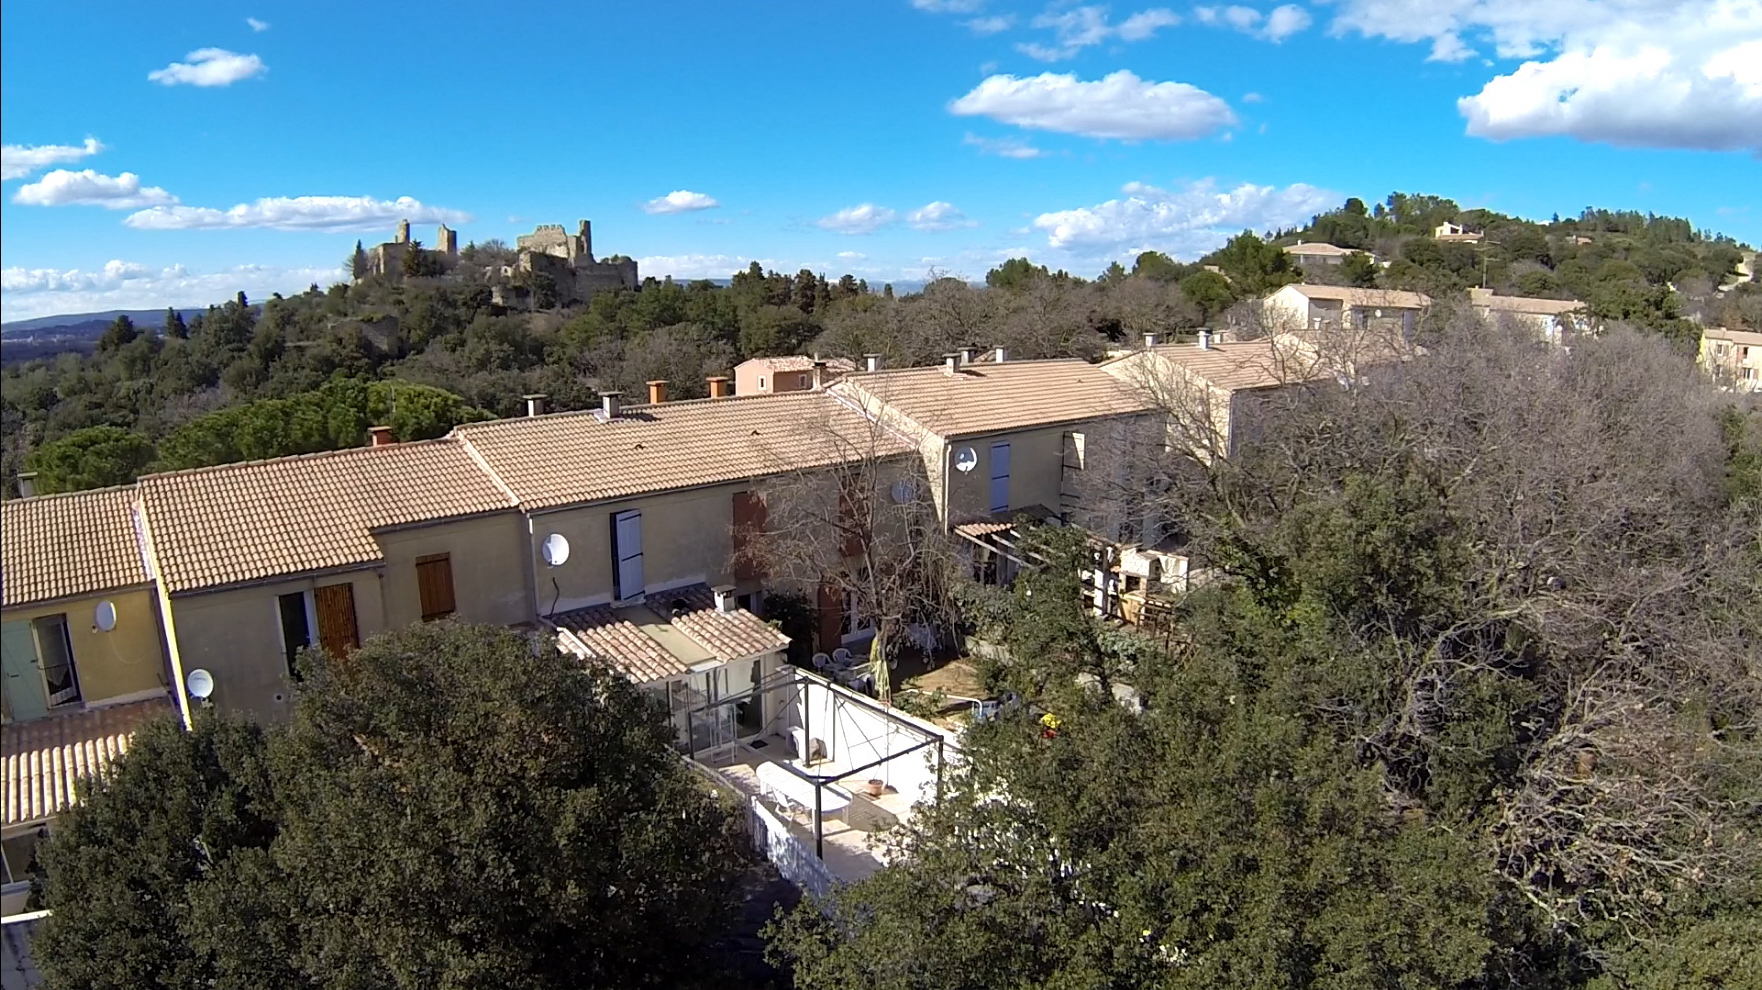 vaucluse drone